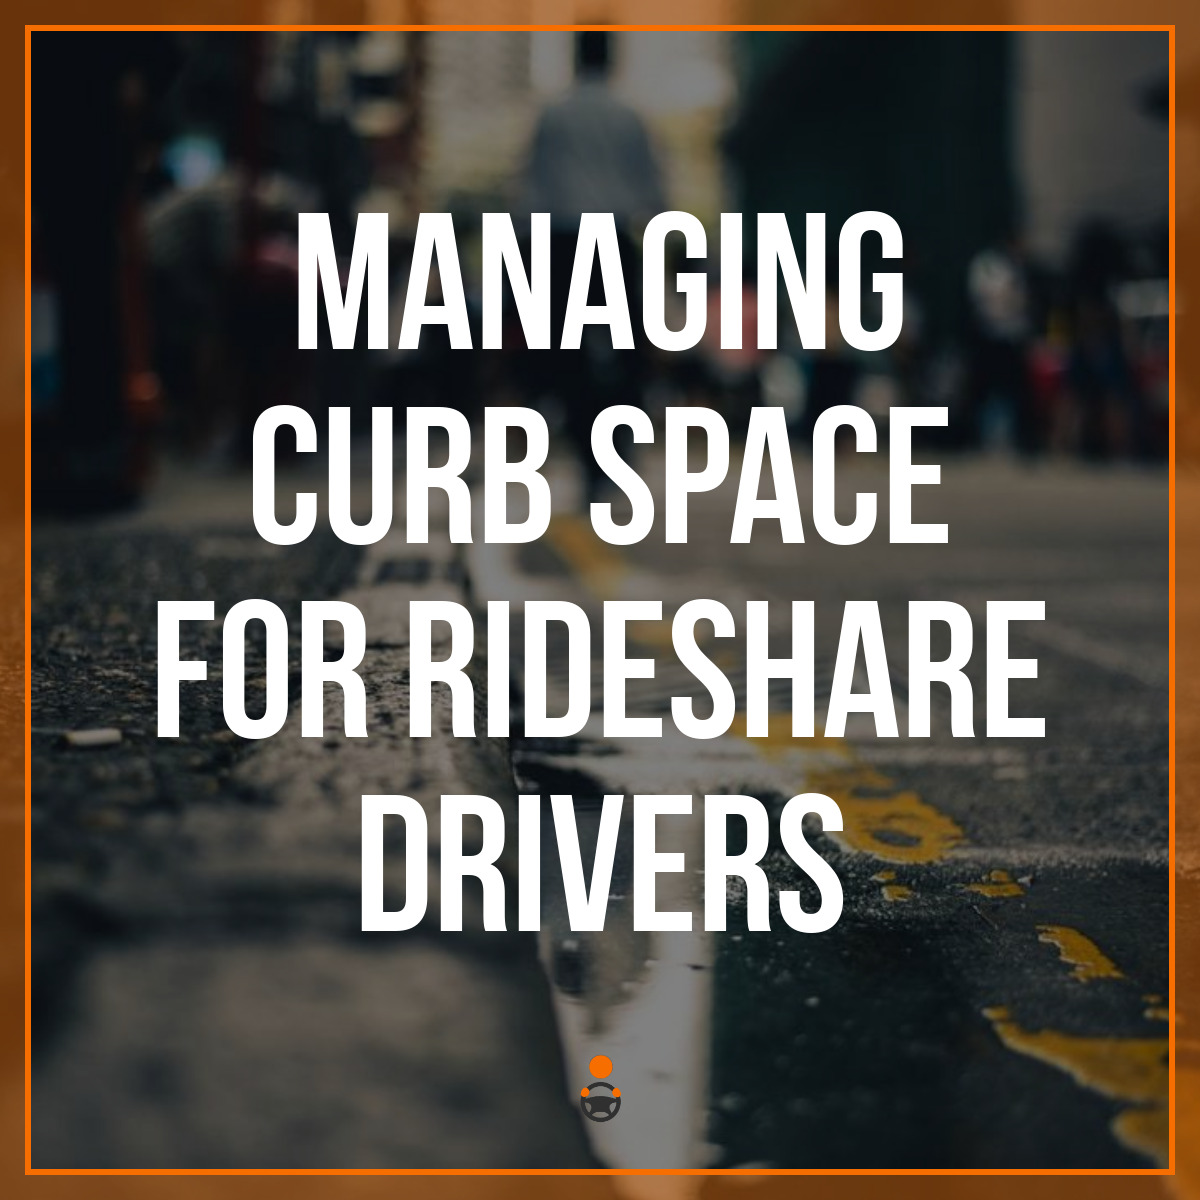 What Is Rideshare >> Managing Curb Space For Rideshare Drivers